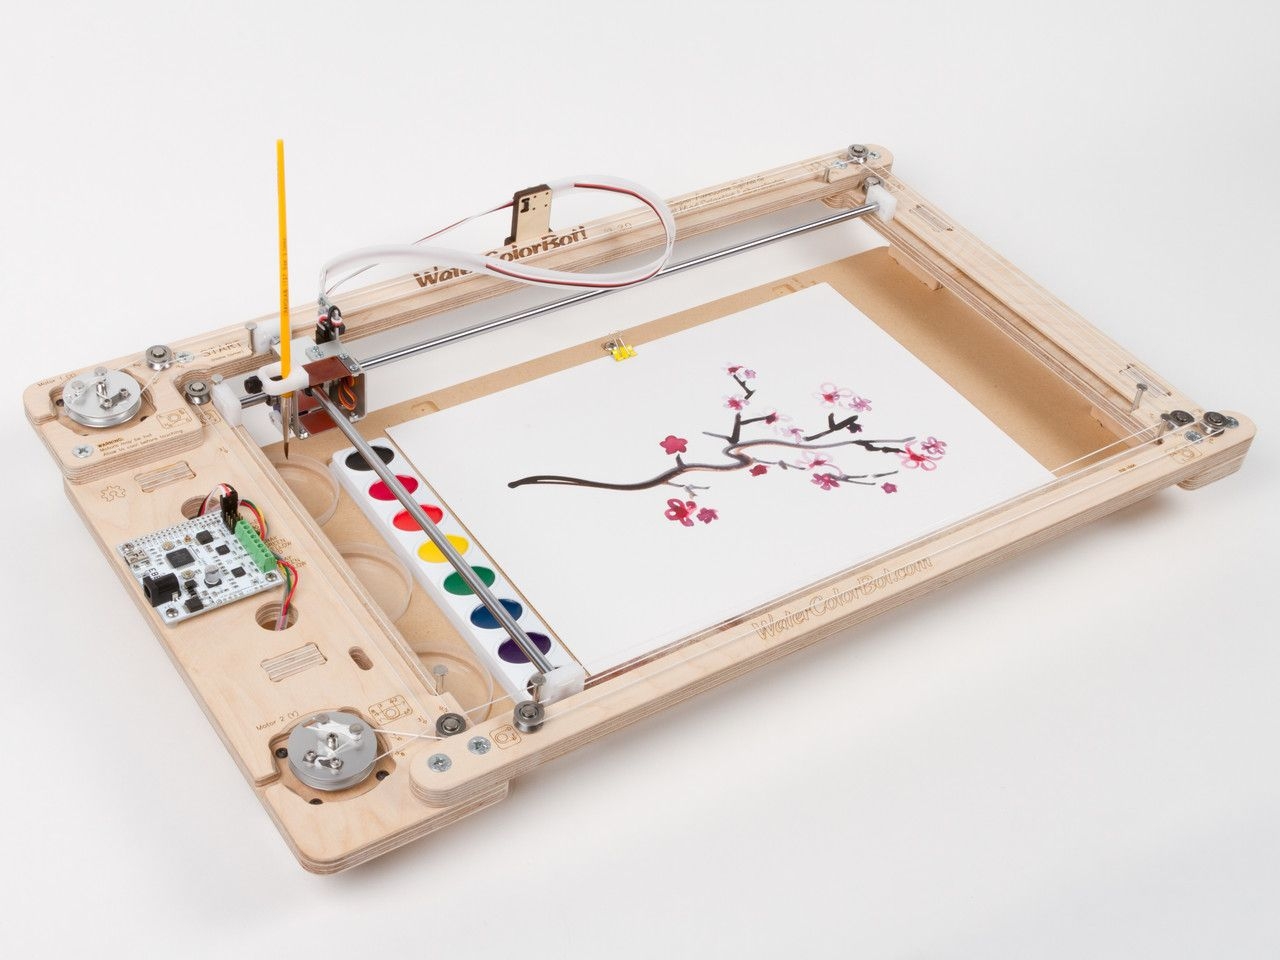 Watercolorbot Electronics Projects Diy Cnc Cnc Projects